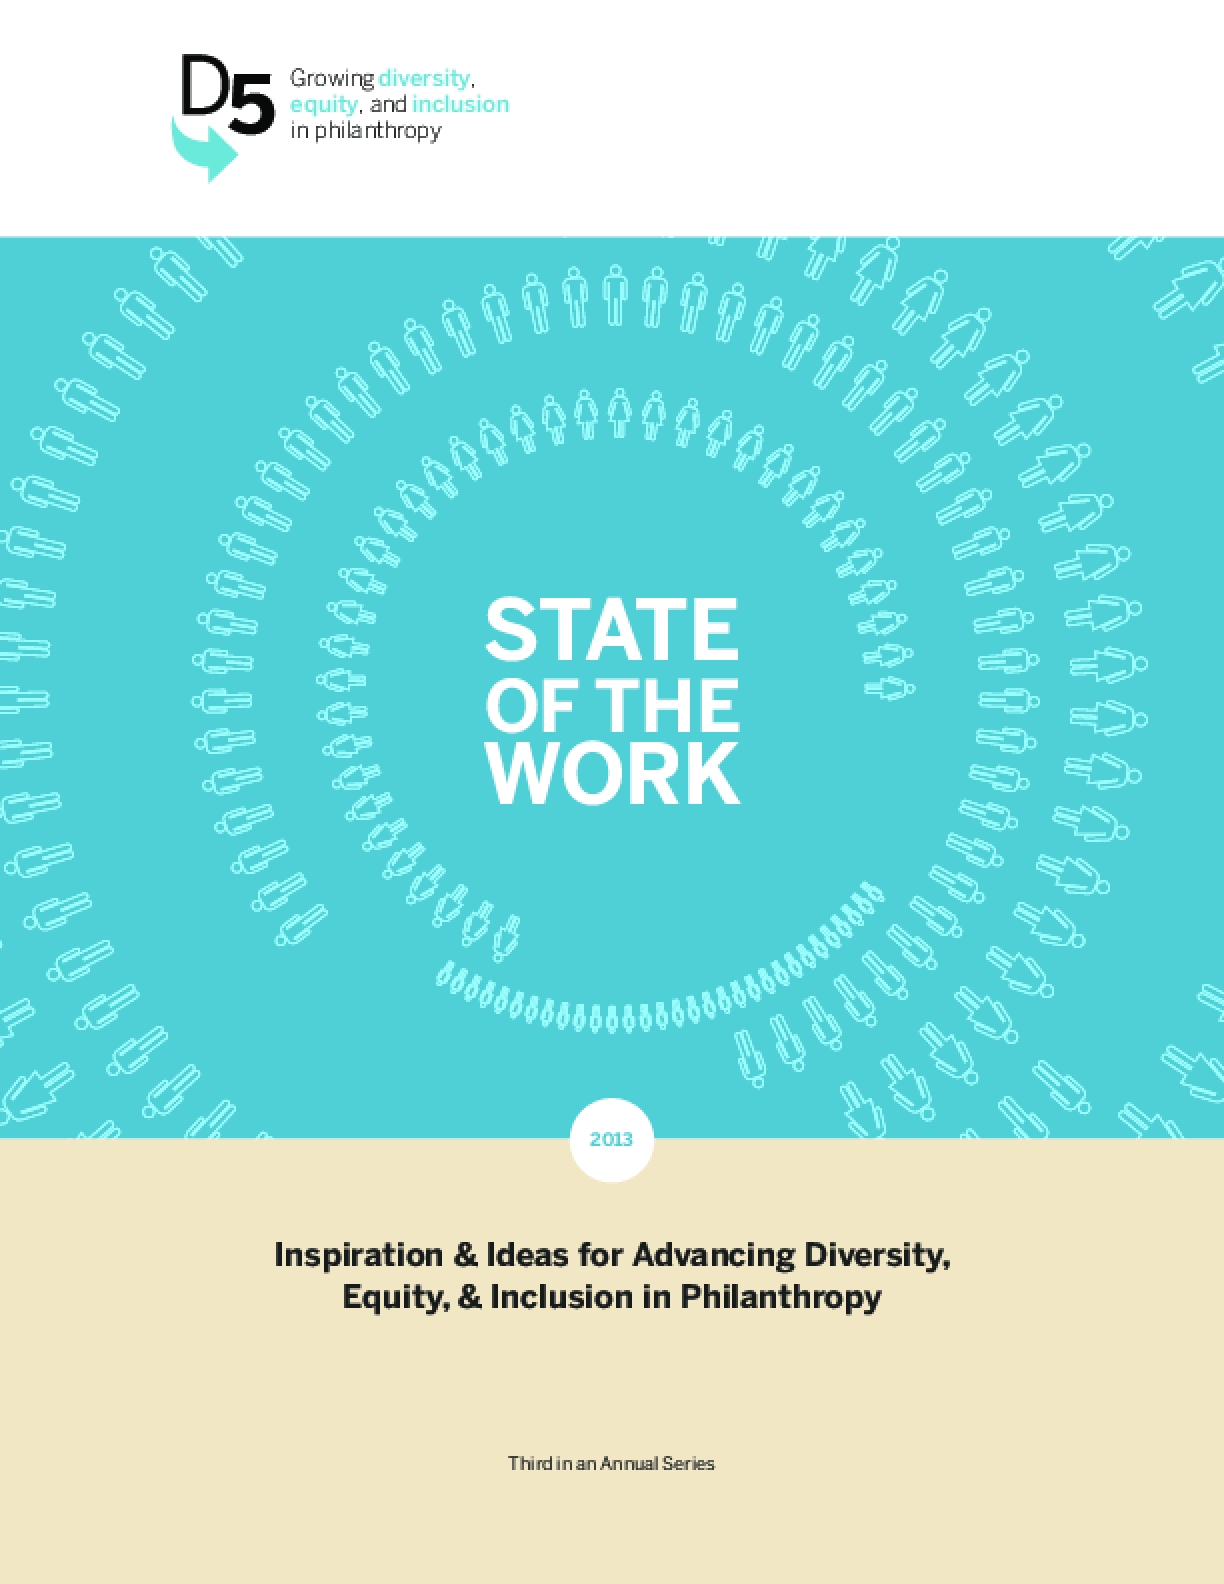 State of the Work: Inspiration & Ideas for Advancing Diversity, Equity, & Inclusion in Philanthropy